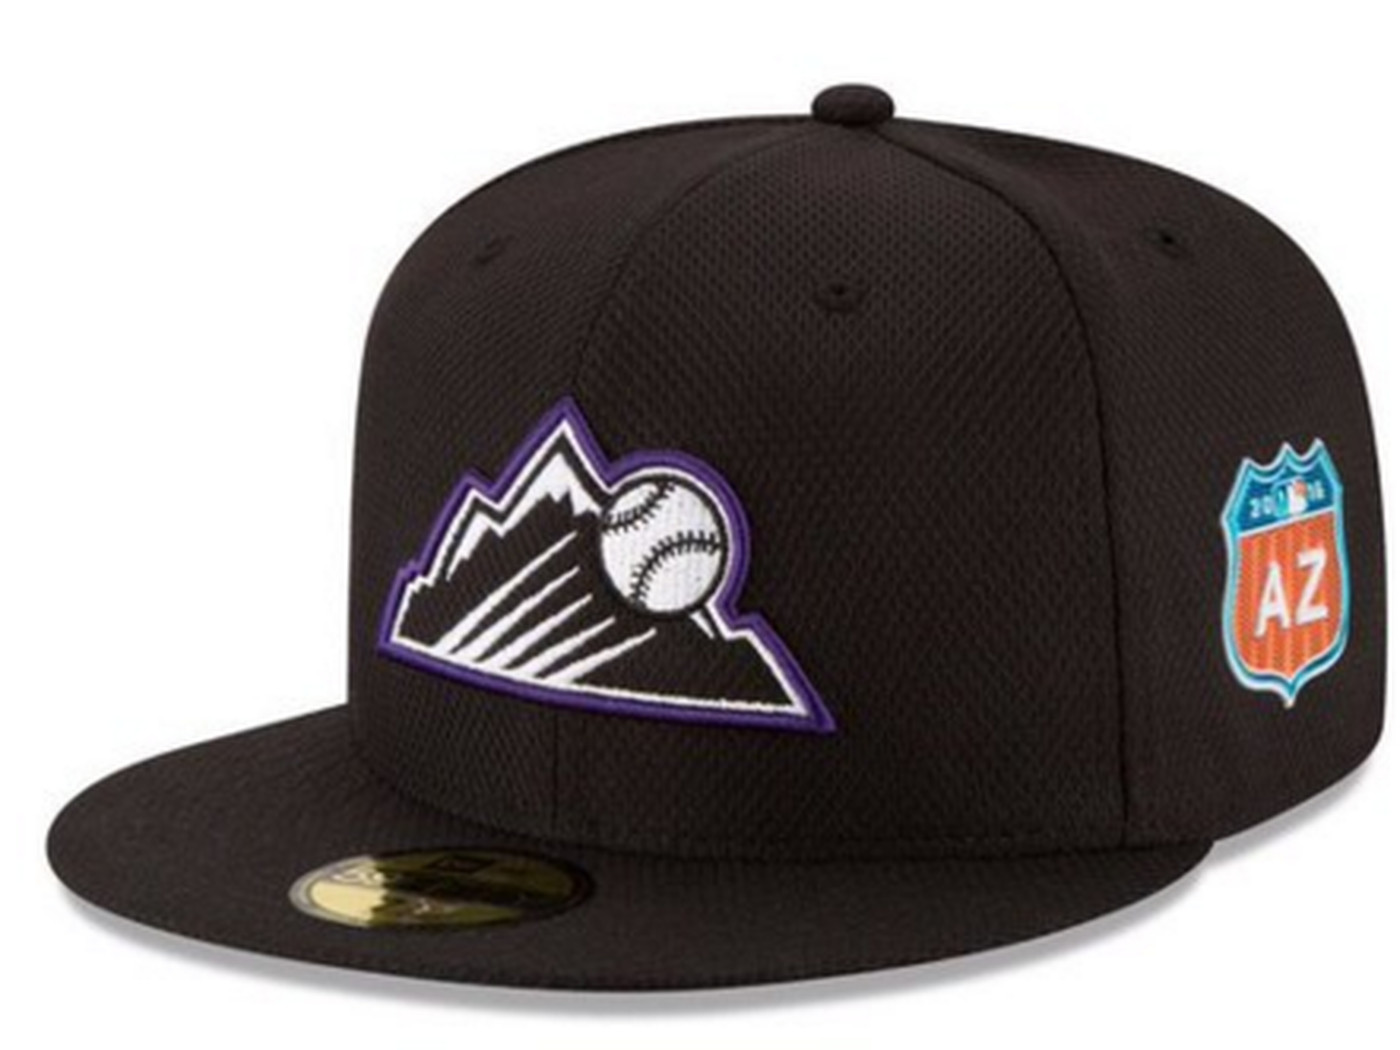 meet 1ccf0 dcde9 Rockies will have new spring training gear for 2016 and the ...